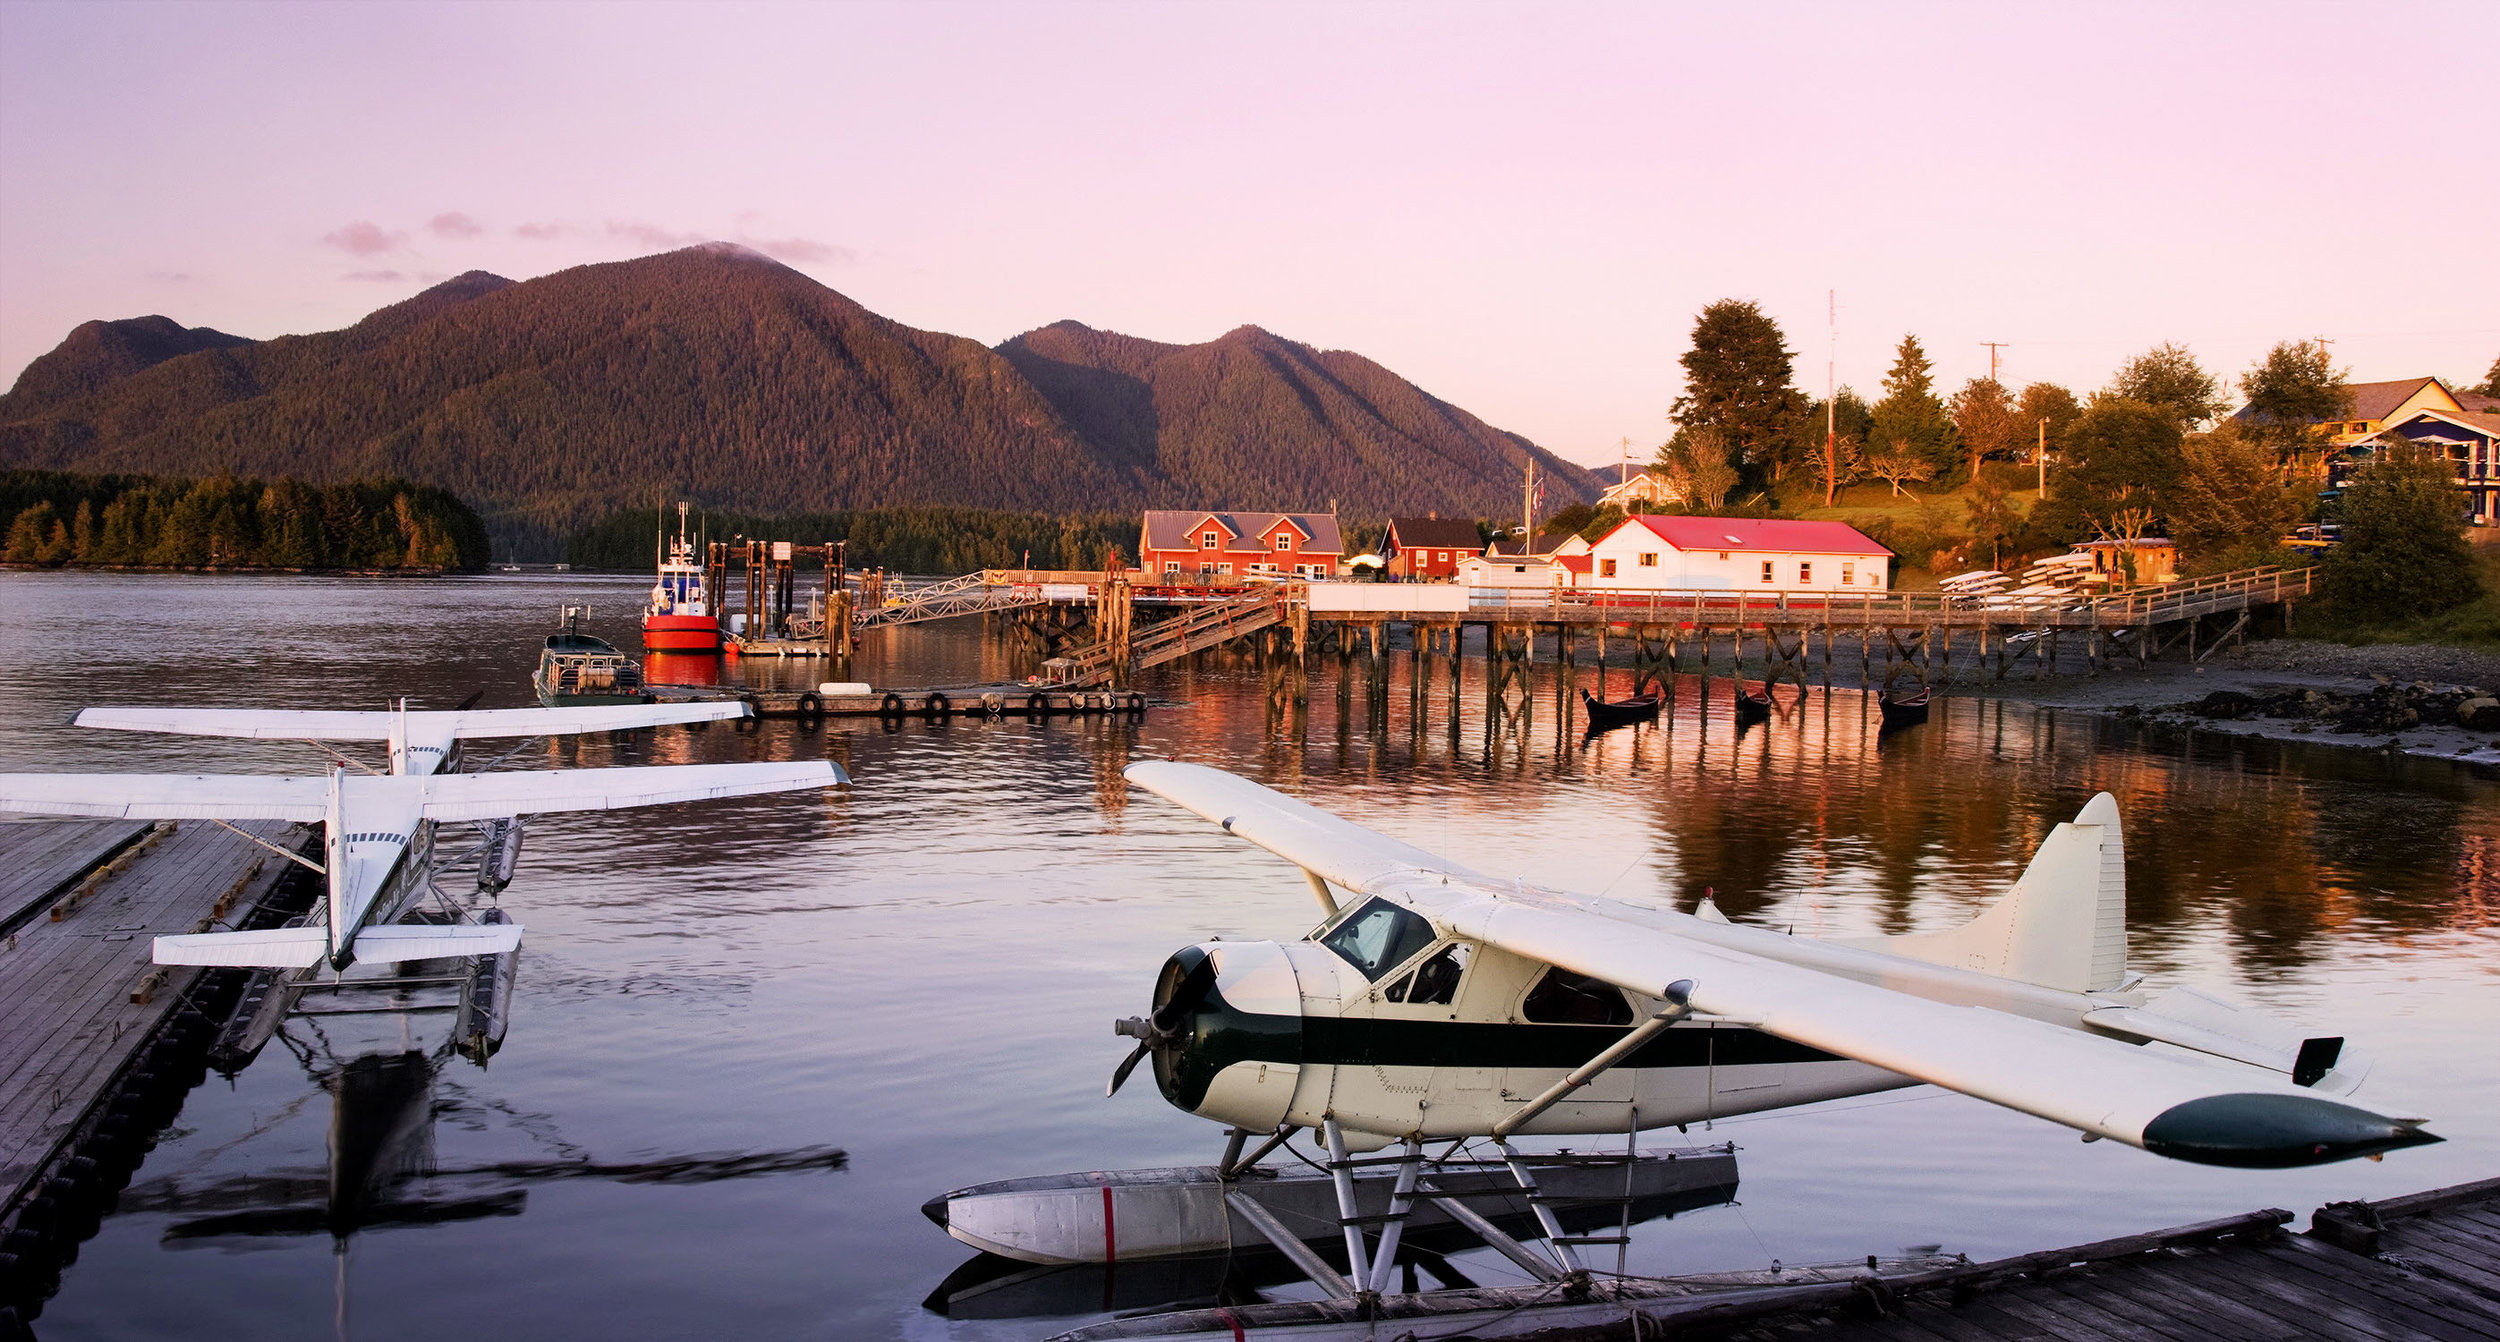 There is no better way to take in the beauty of the region than by taking a seaplane to Tofino.